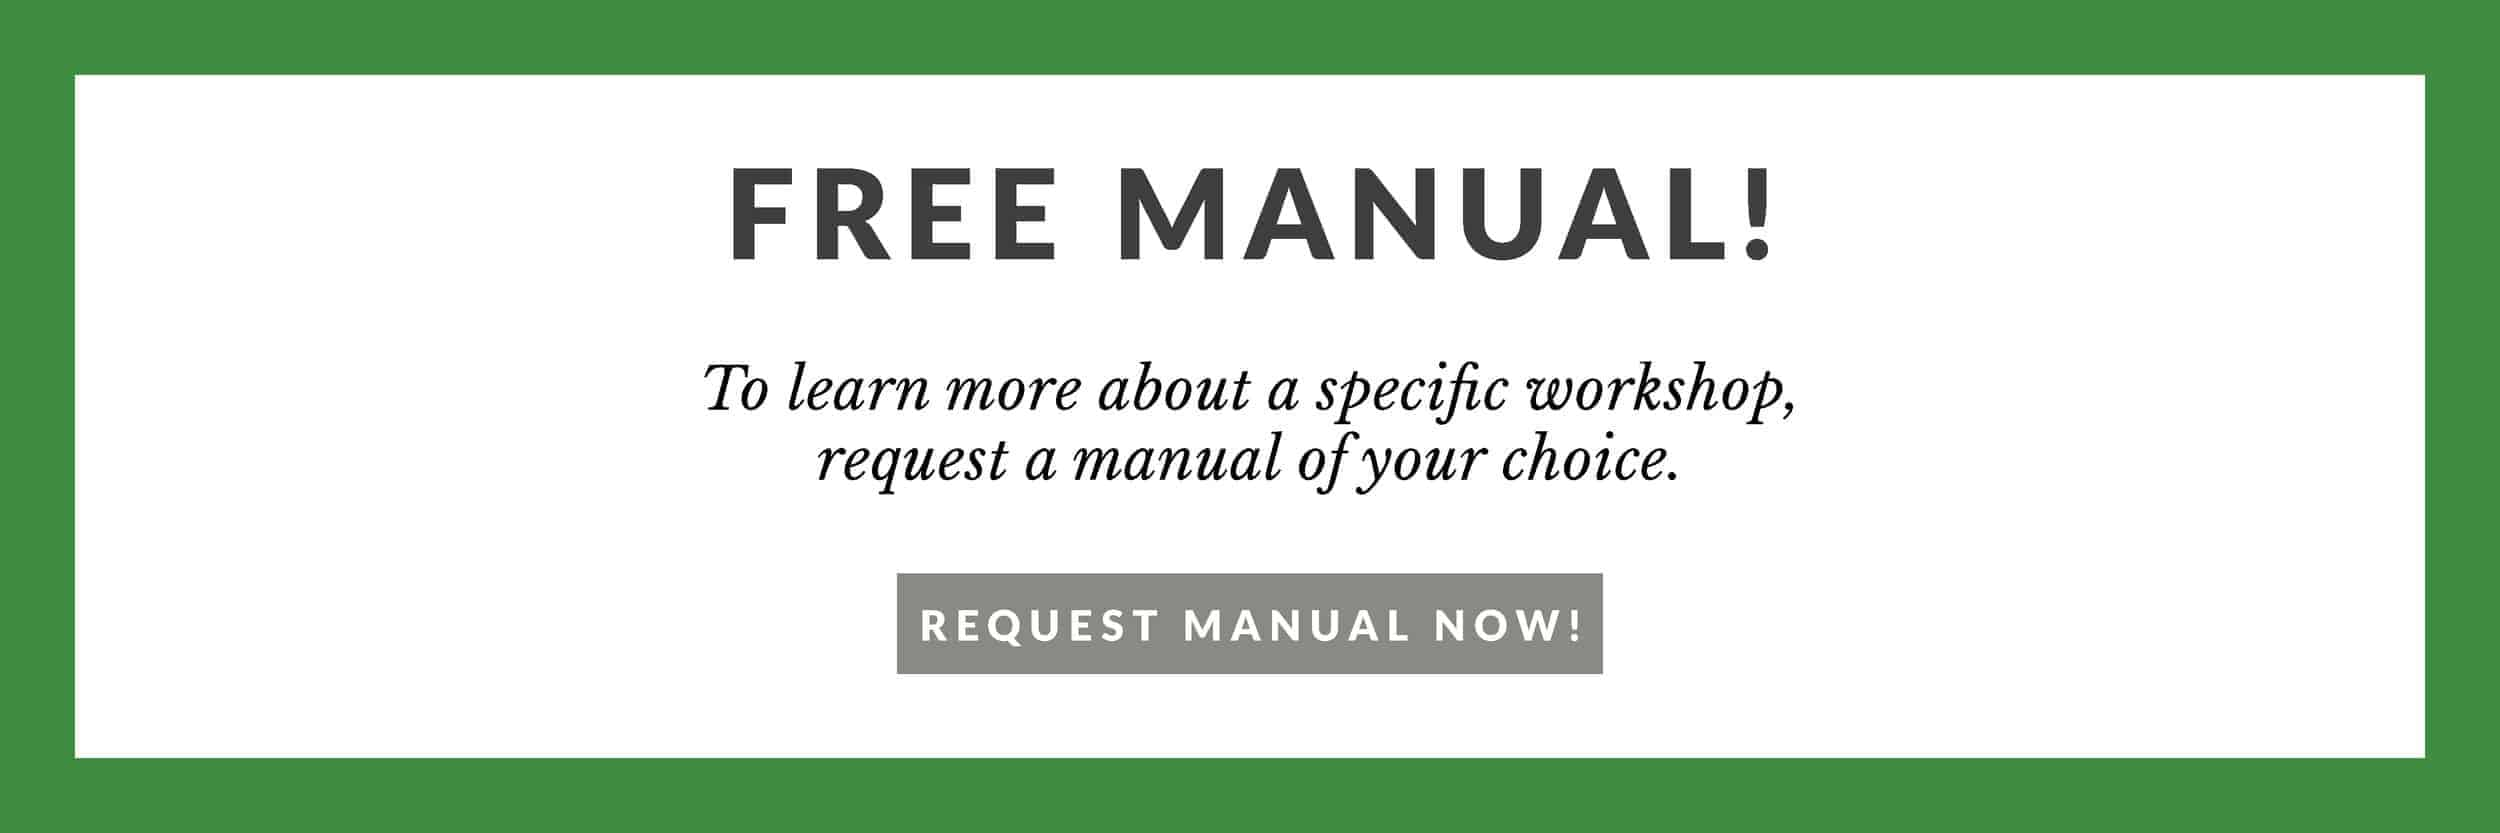 Request any free manual popup